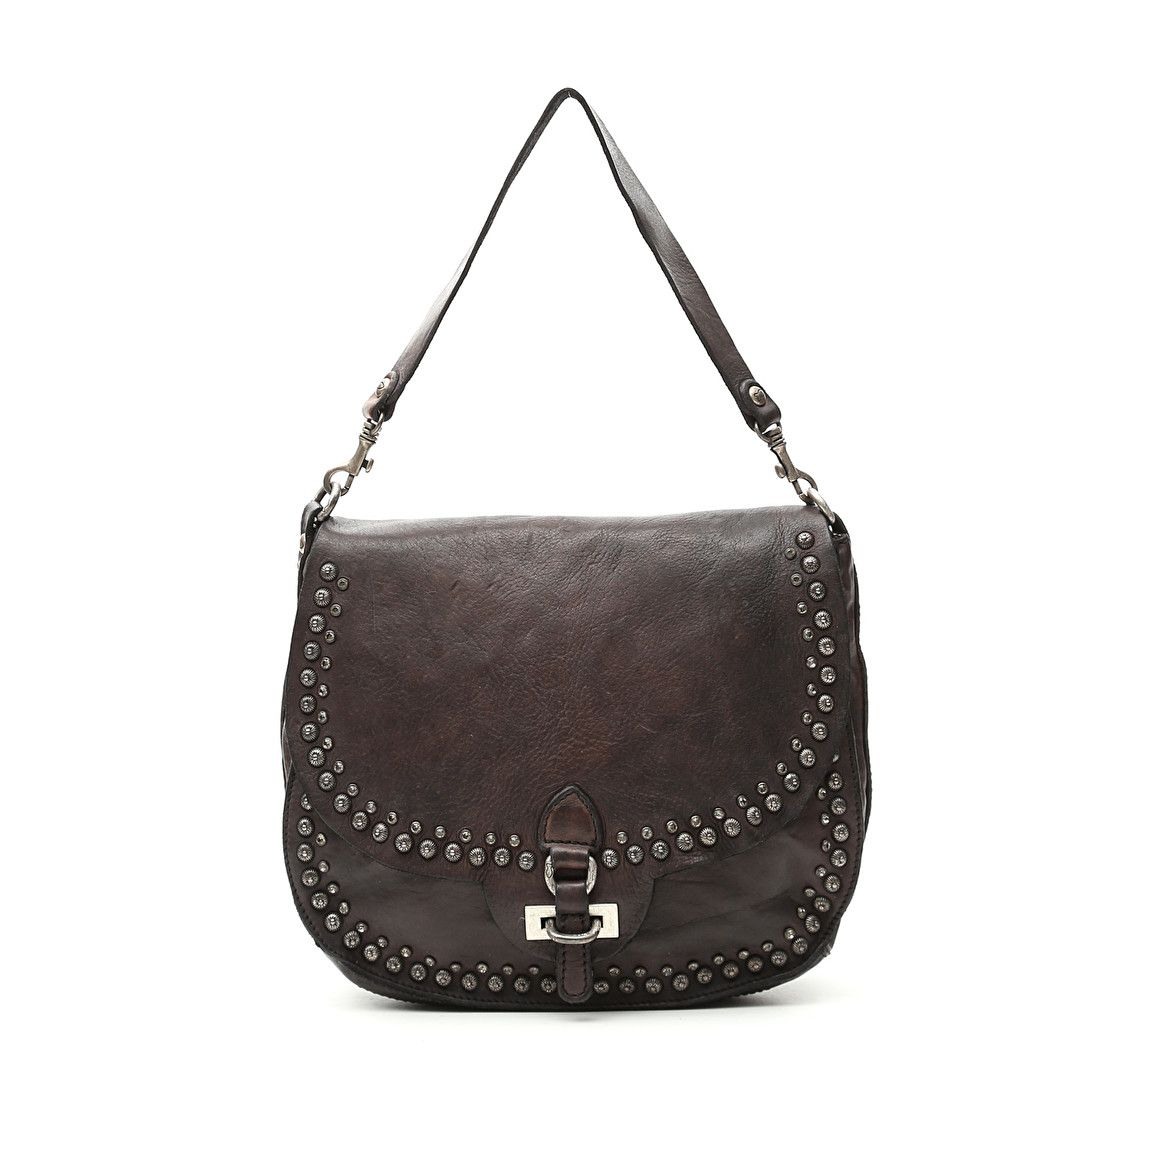 1982fe748b44 Cross-body bag in grey leather with studs